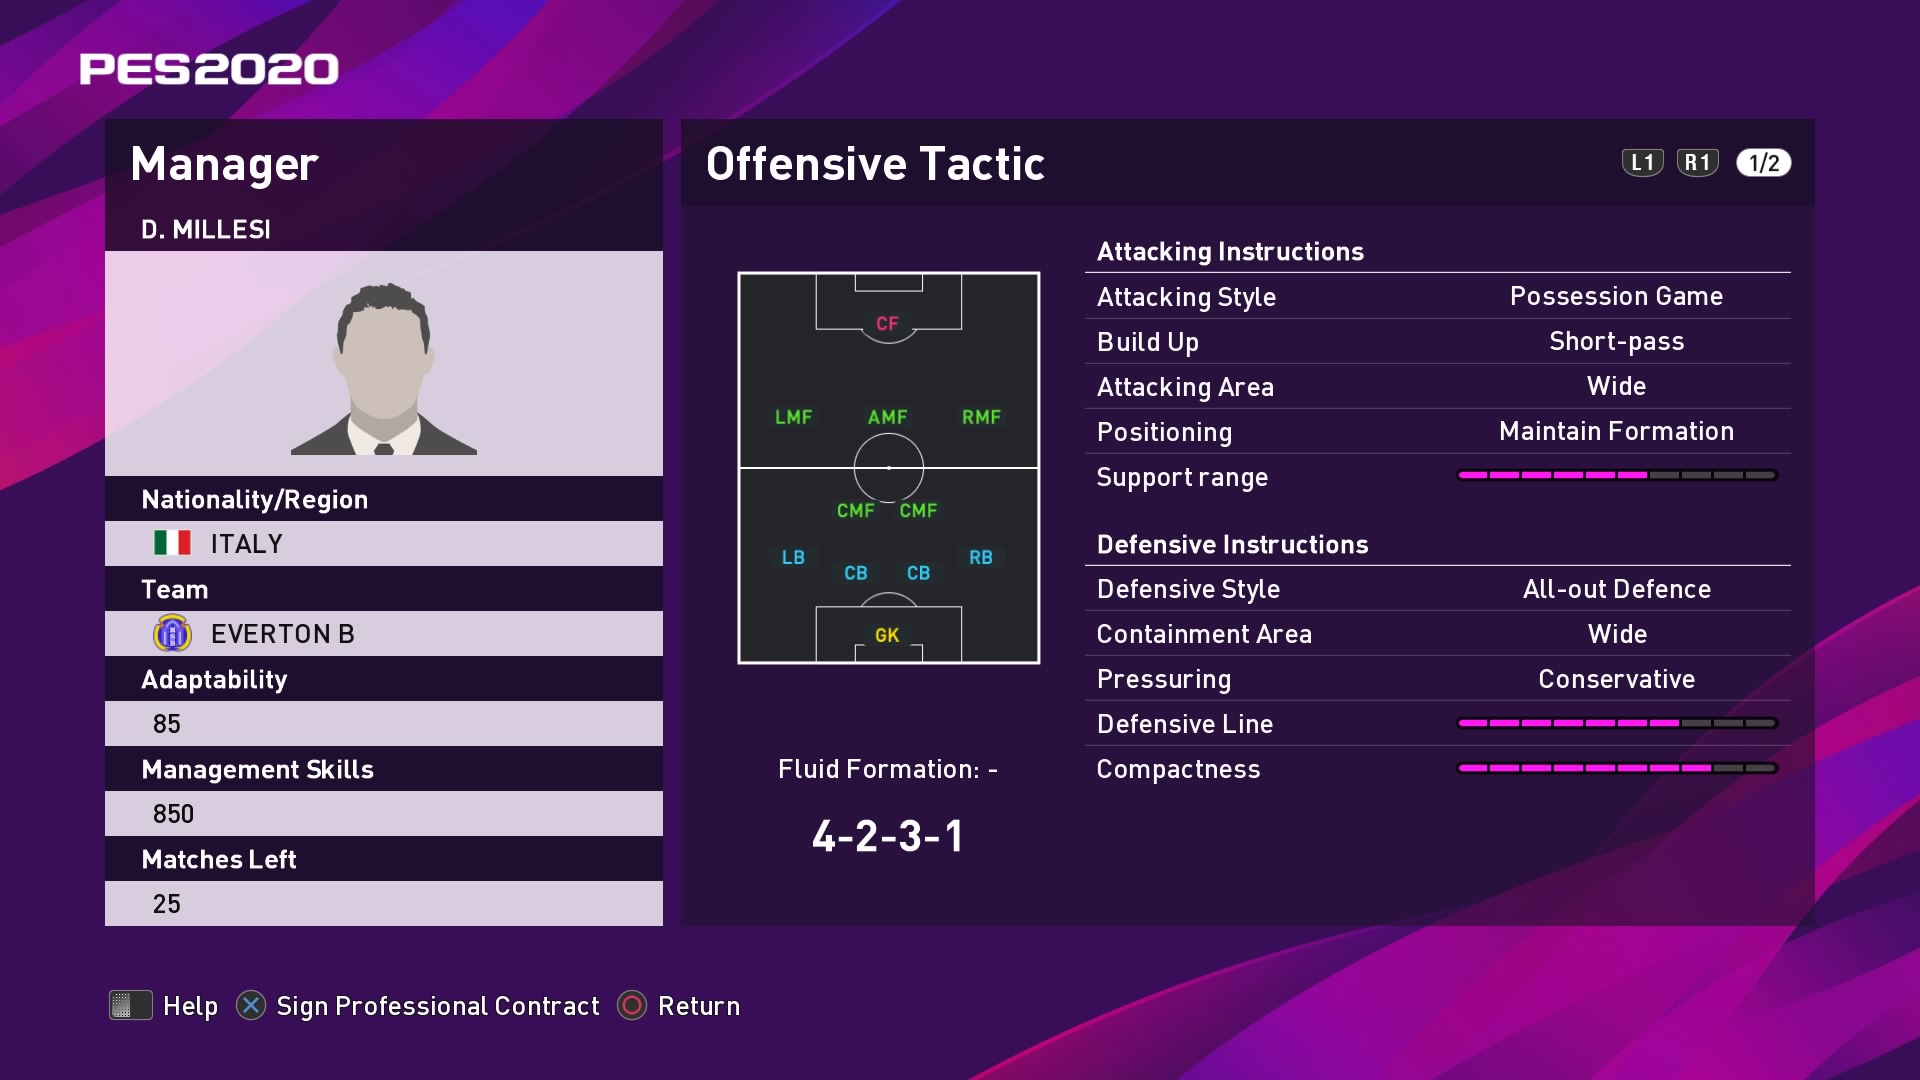 D. Millesi (4) (Carlo Ancelotti) Offensive Tactic in PES 2020 myClub